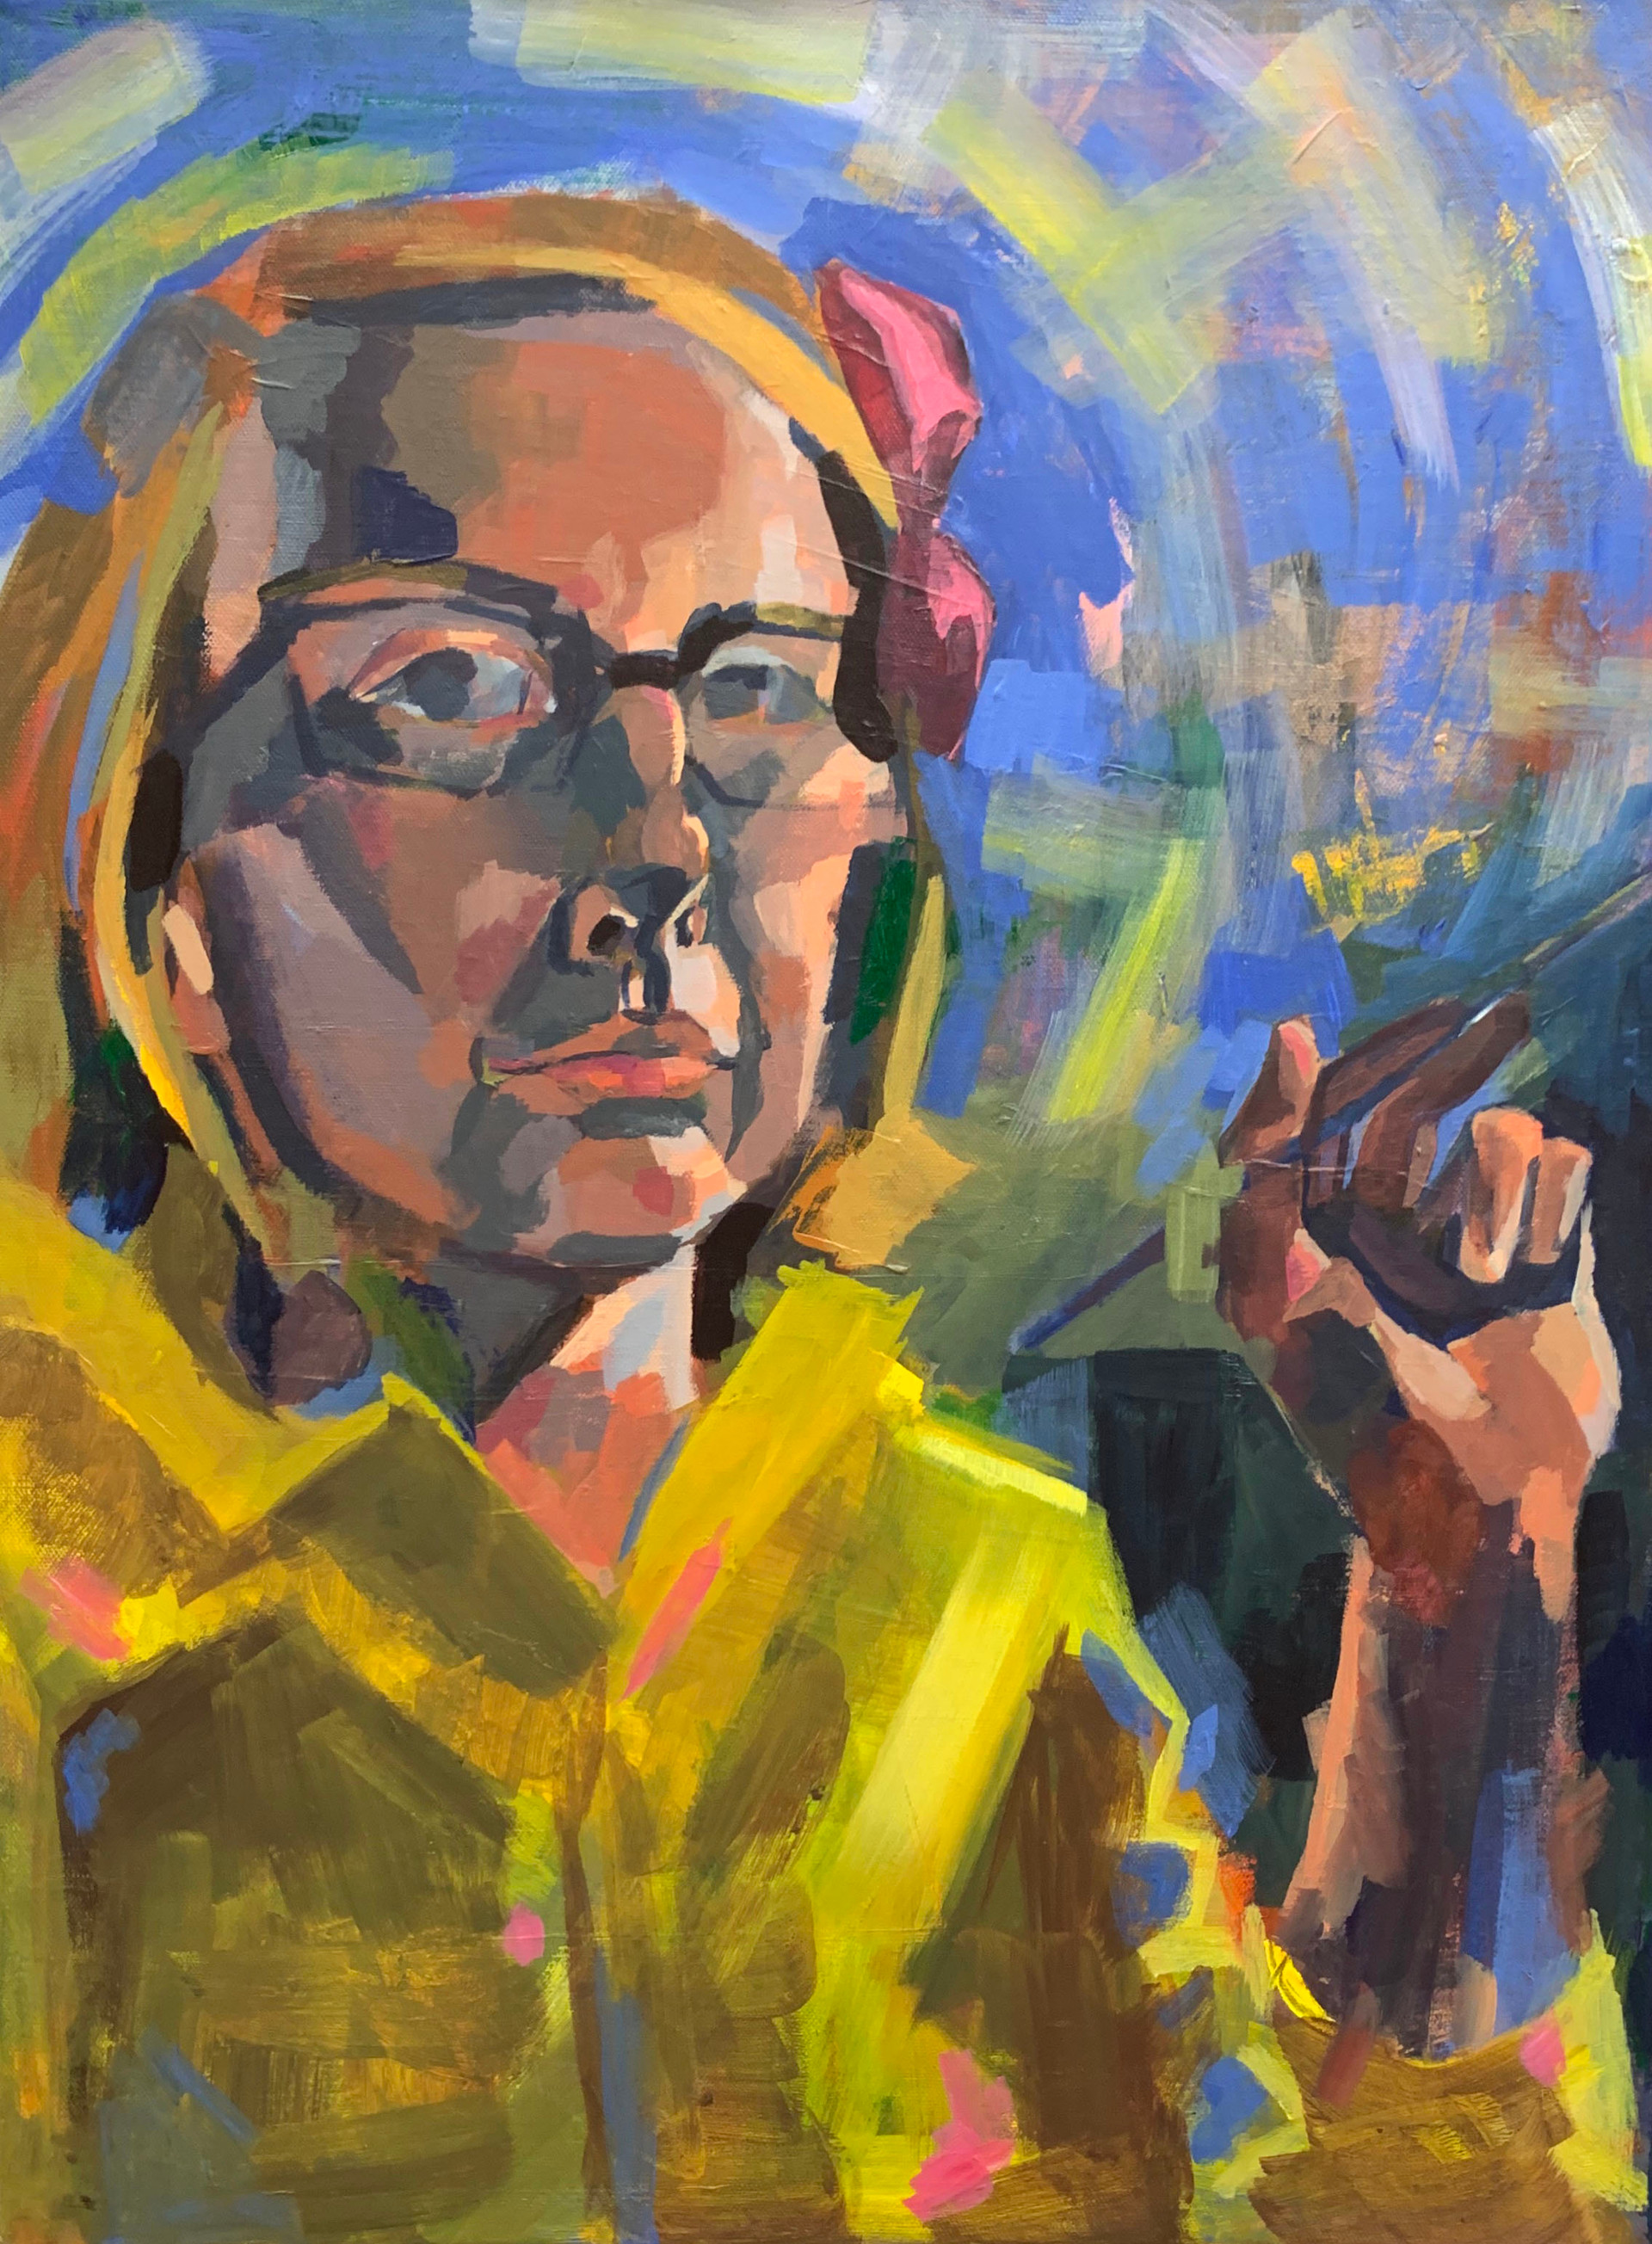 "Self-Portrait in Raincoat and Bow Acrylic on canvas 18"" x 24"" 2020"